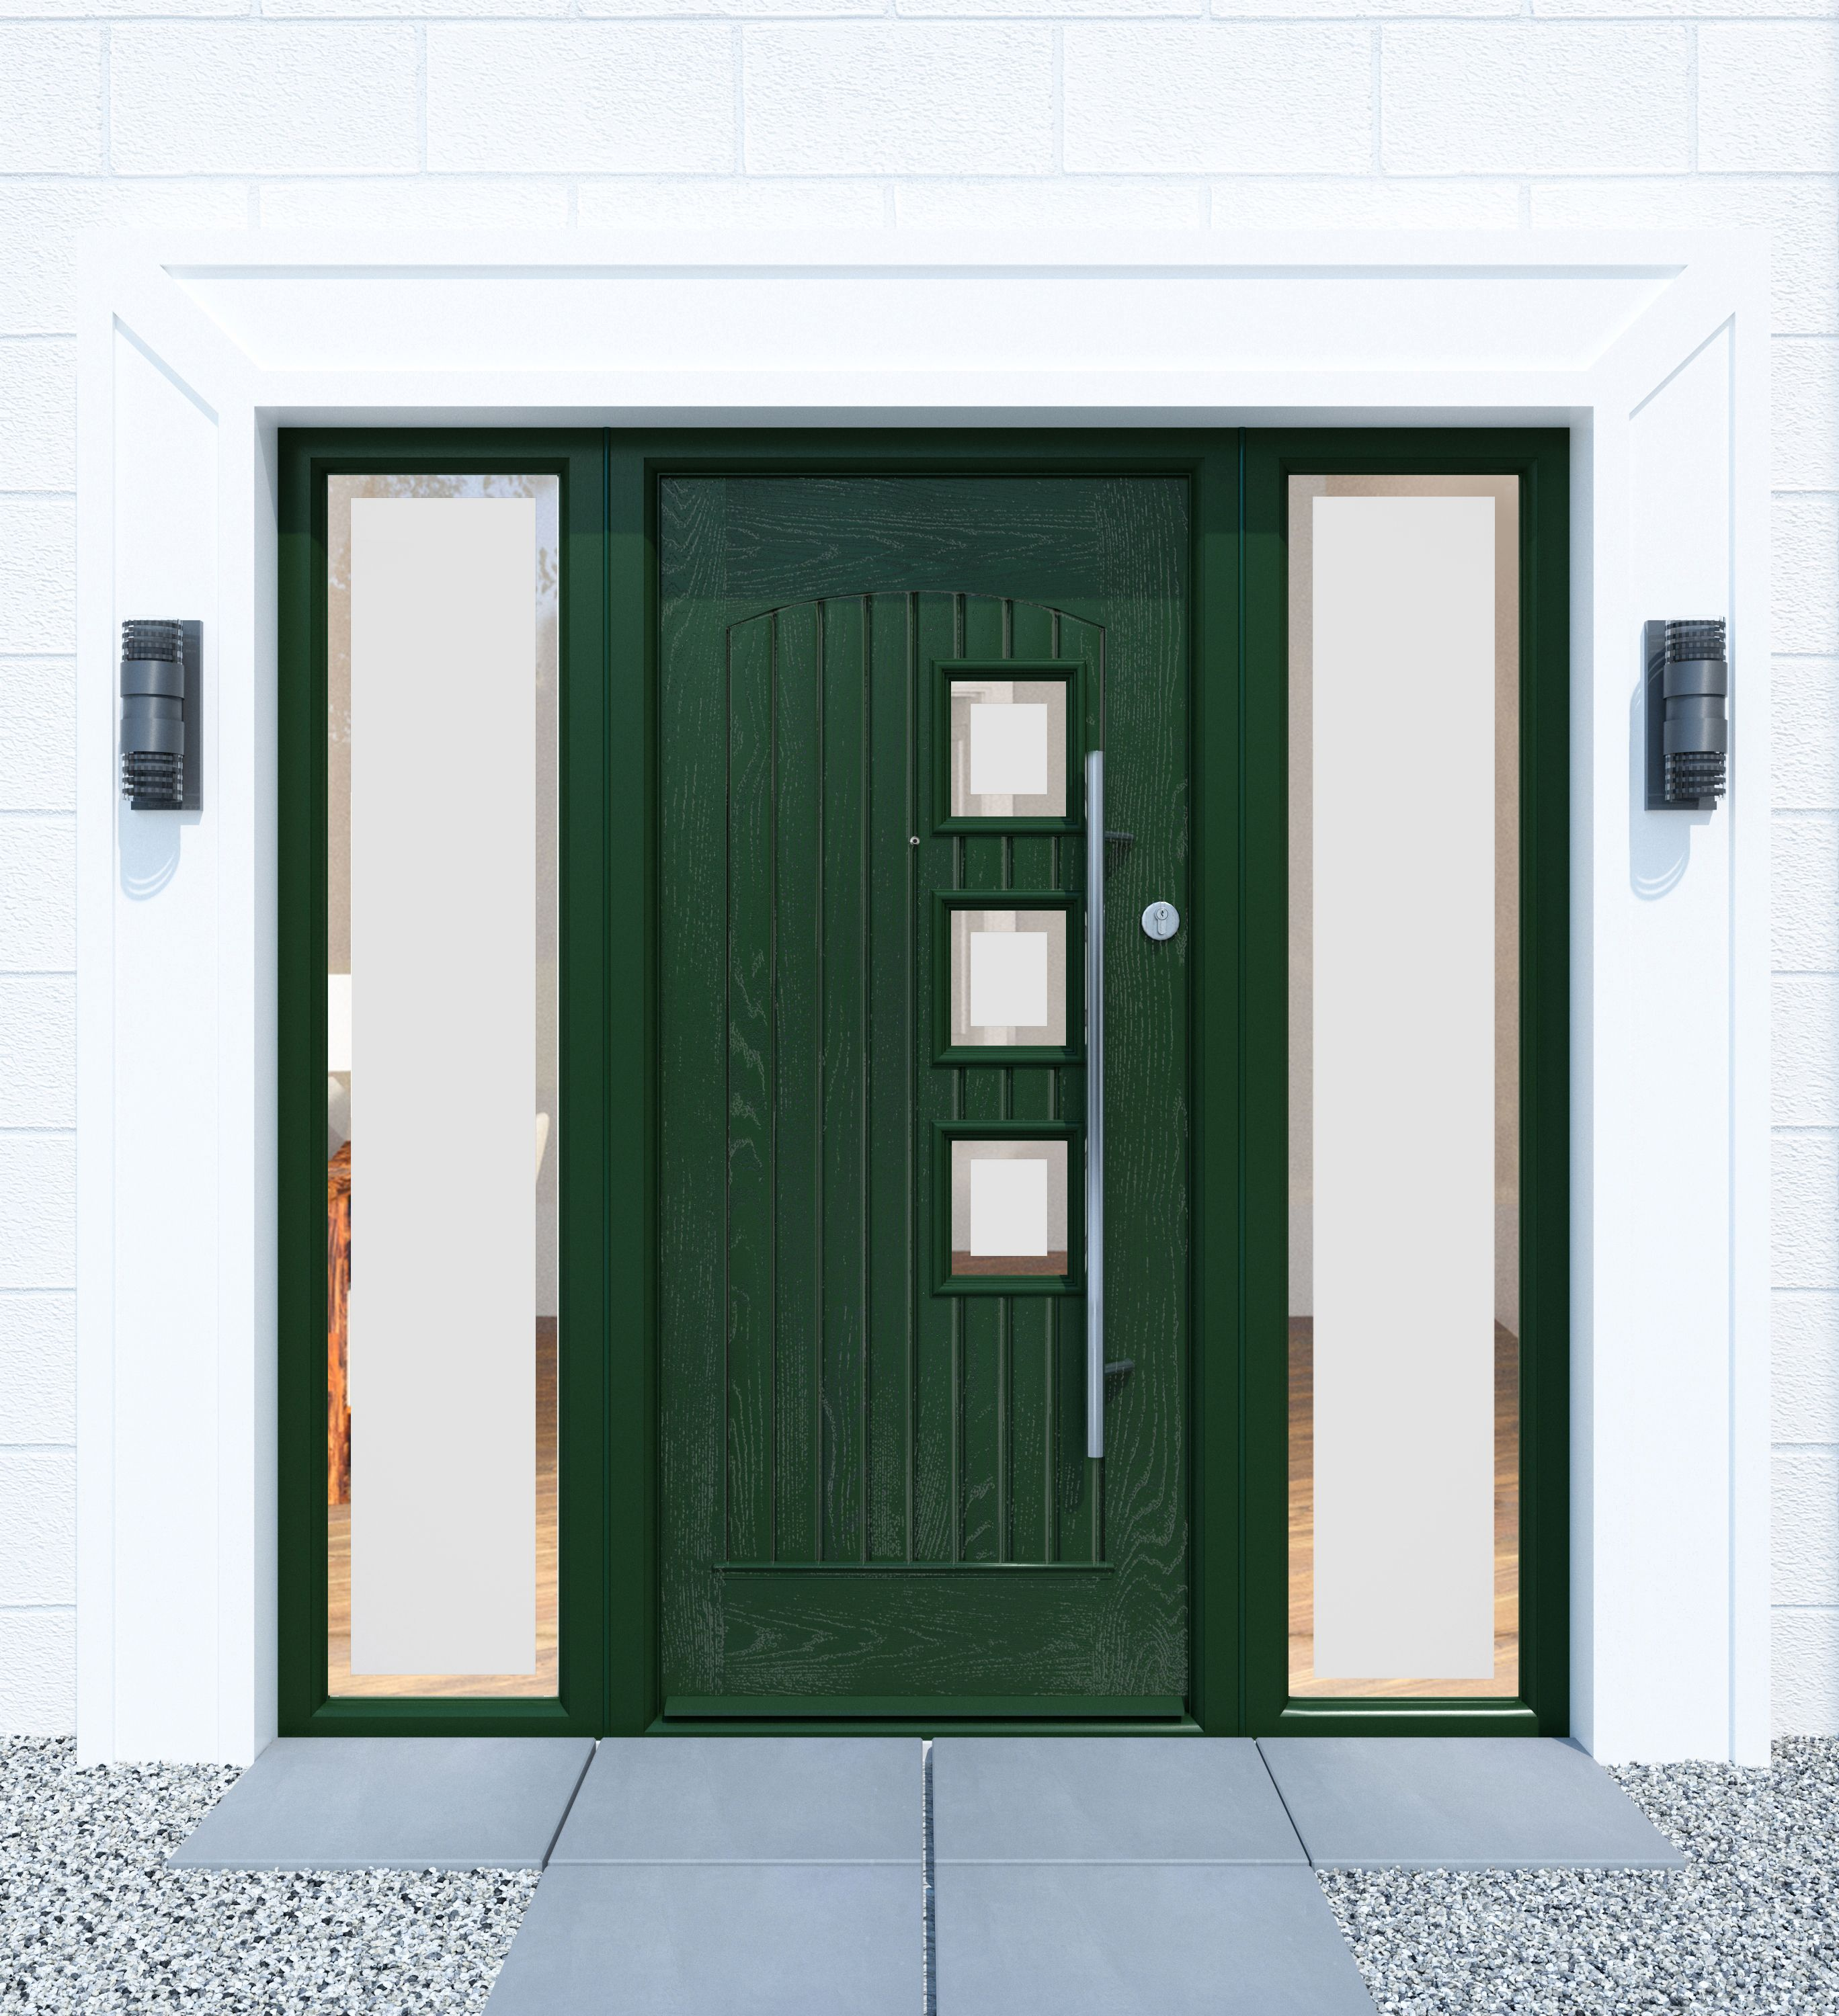 Cashel Design Palladio Door in Green with Stainless Steel Pull  Bar.